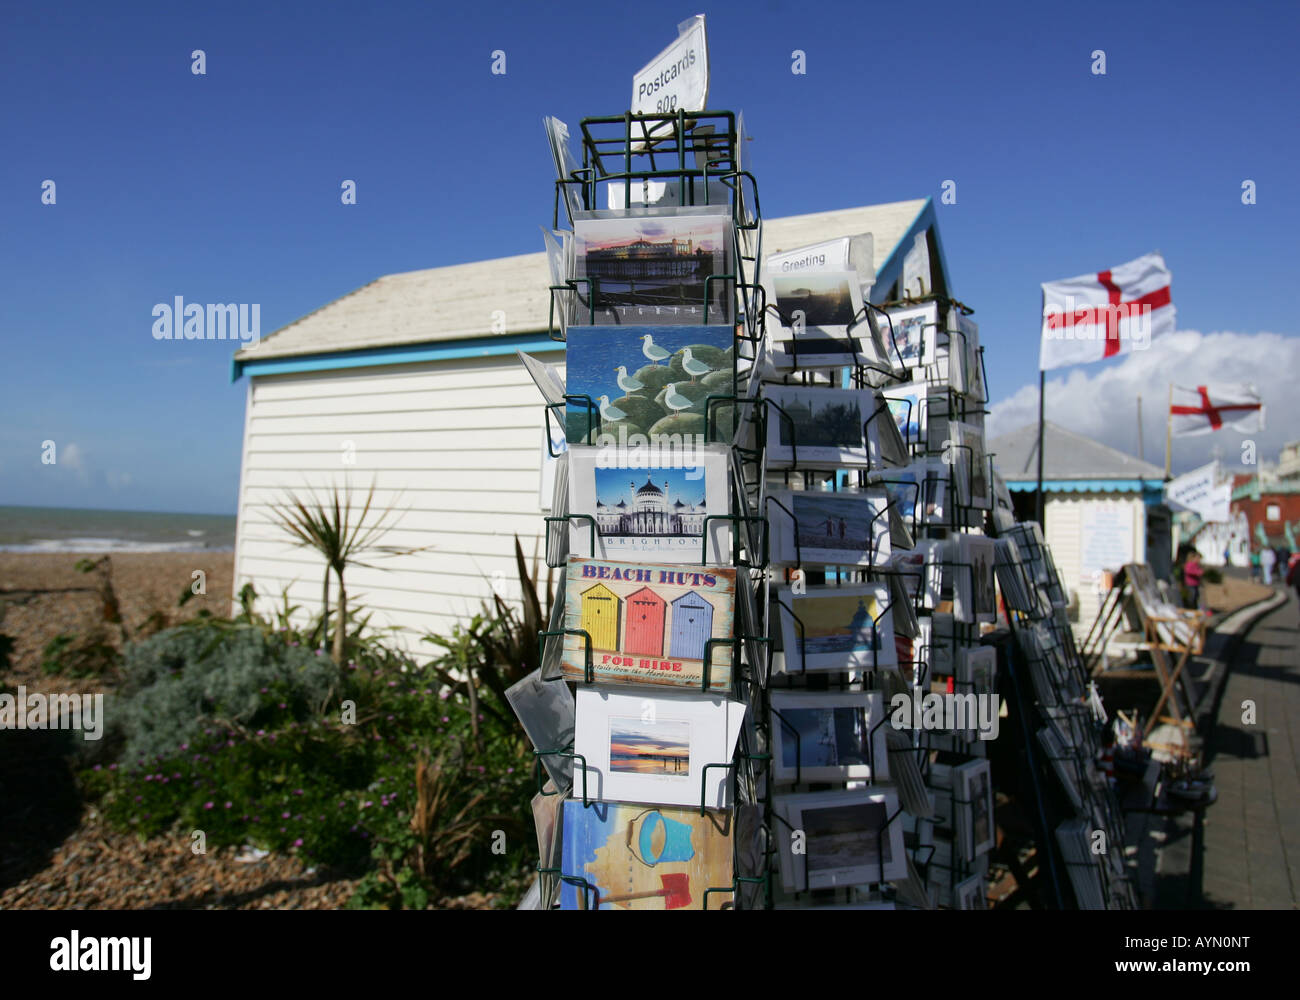 postcards on sale on the seafront in Brighton - Stock Image